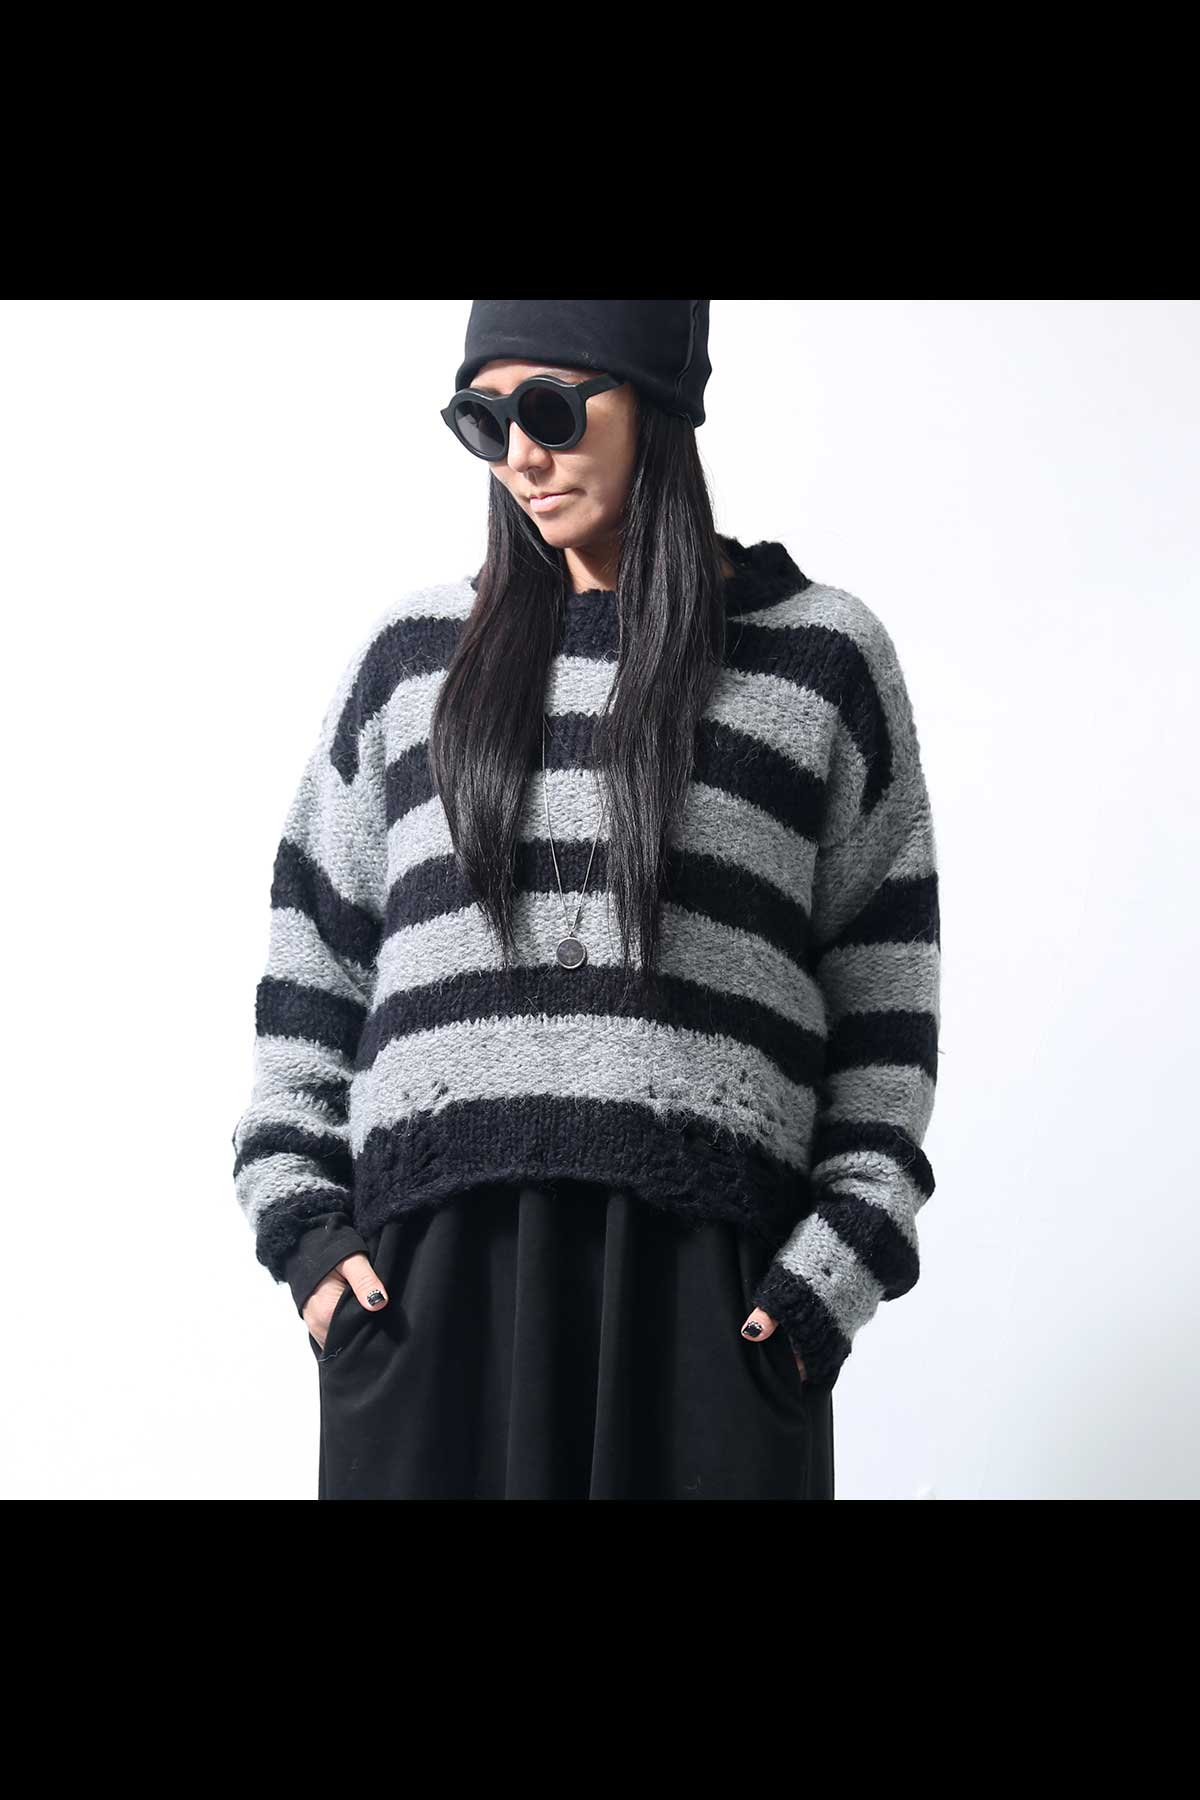 <img class='new_mark_img1' src='https://img.shop-pro.jp/img/new/icons8.gif' style='border:none;display:inline;margin:0px;padding:0px;width:auto;' />STRIPE SHORT KNIT TOPS WK90_BLACK/GREY